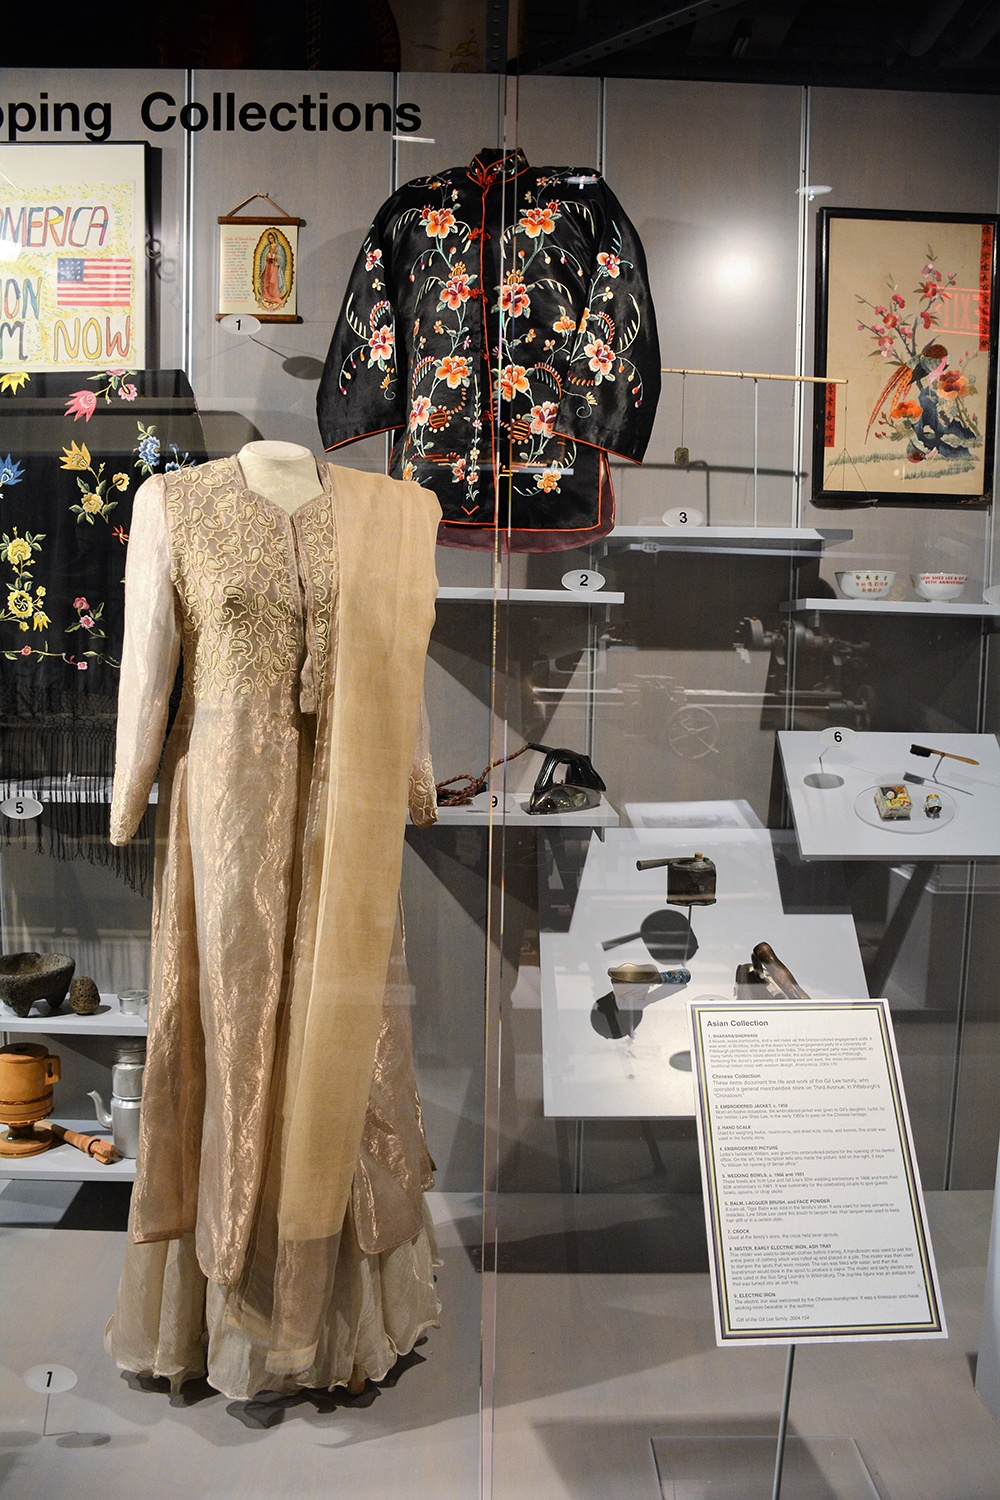 Formal engagement ceremony outfit (left foreground) worn by an Indian woman, undated.